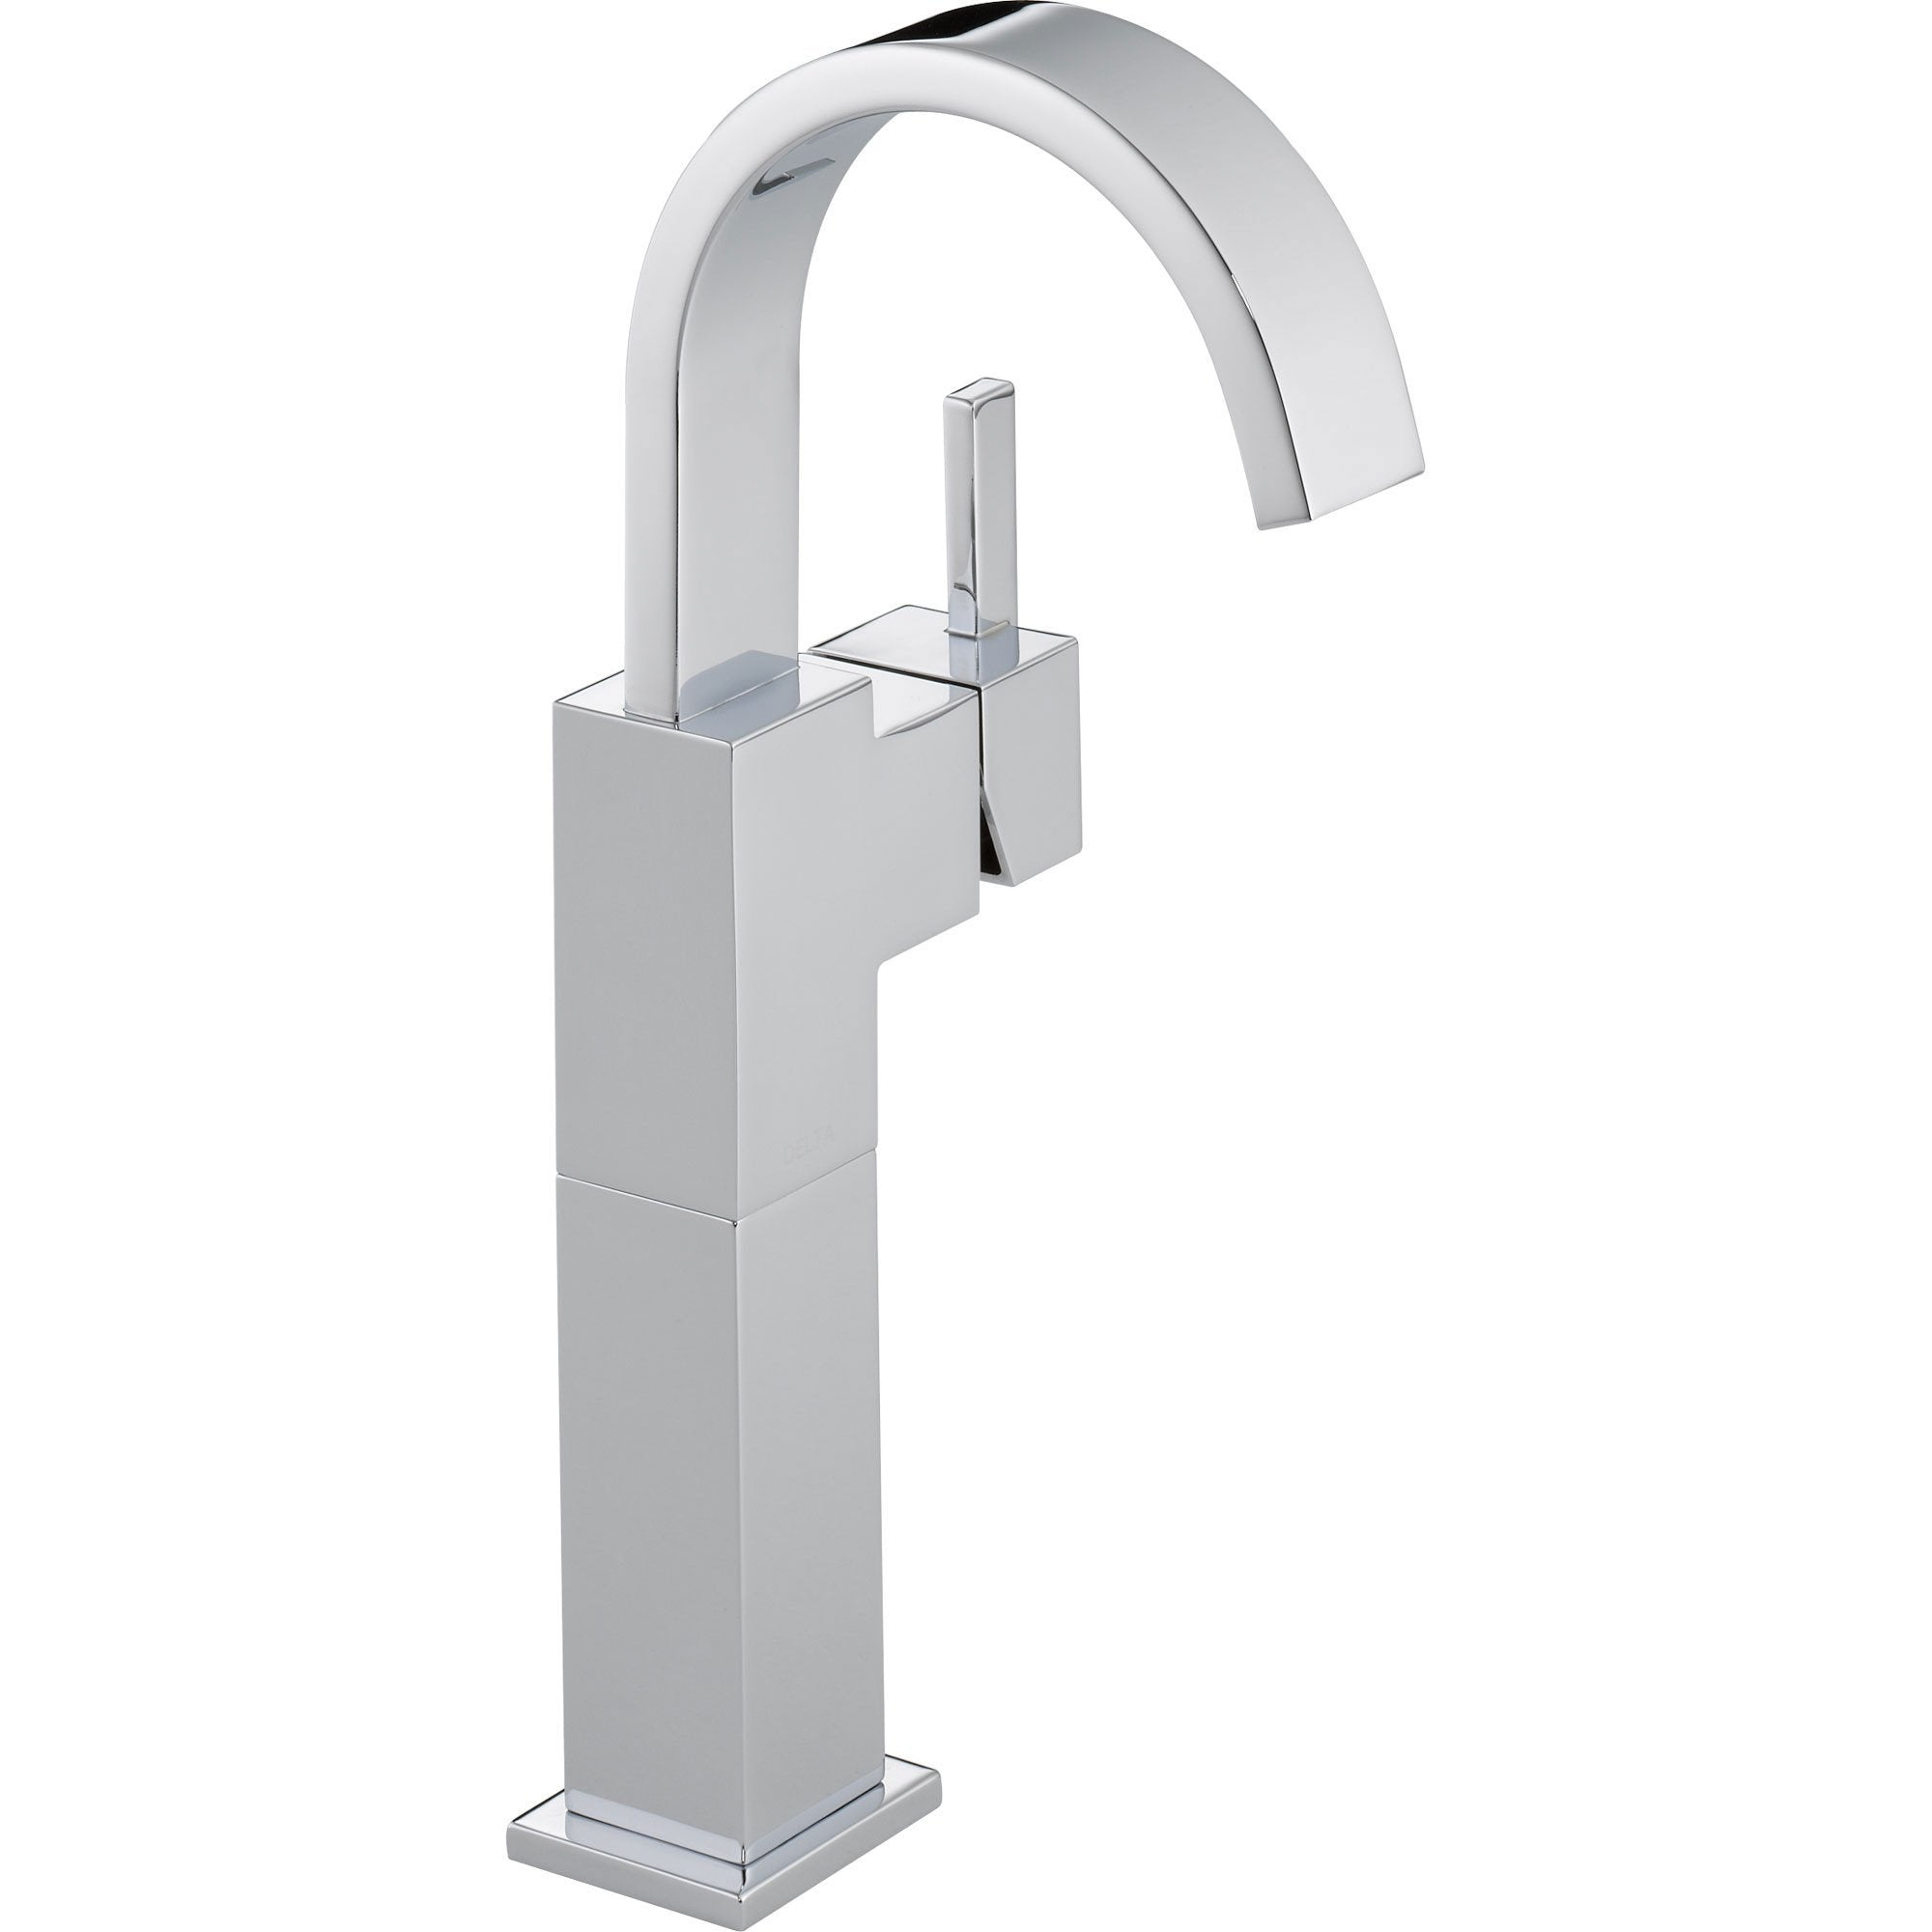 Delta Vero Single-Hole 1-Handle Chrome Tall Vessel Sink Bathroom Faucet 521794